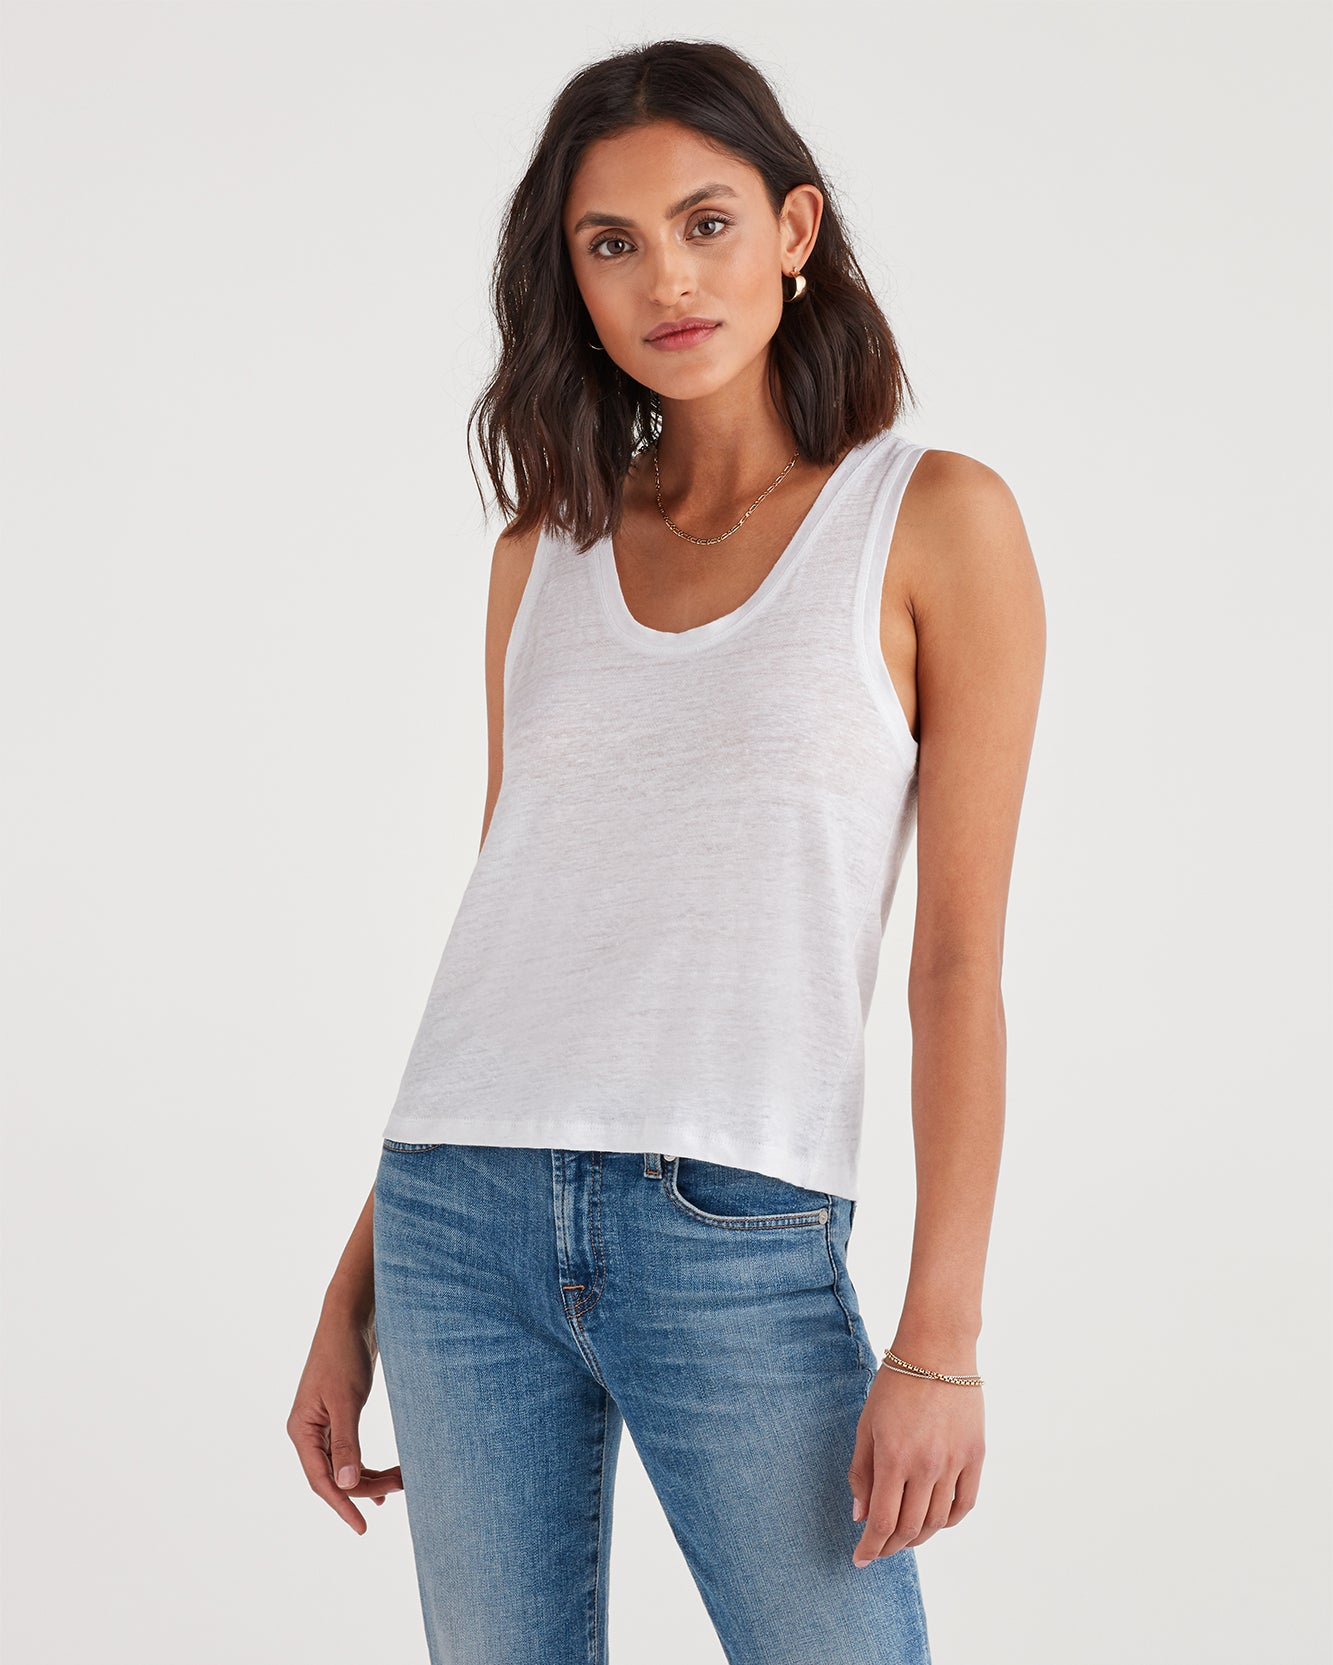 Image of Scoop Neck Tank in Optic White